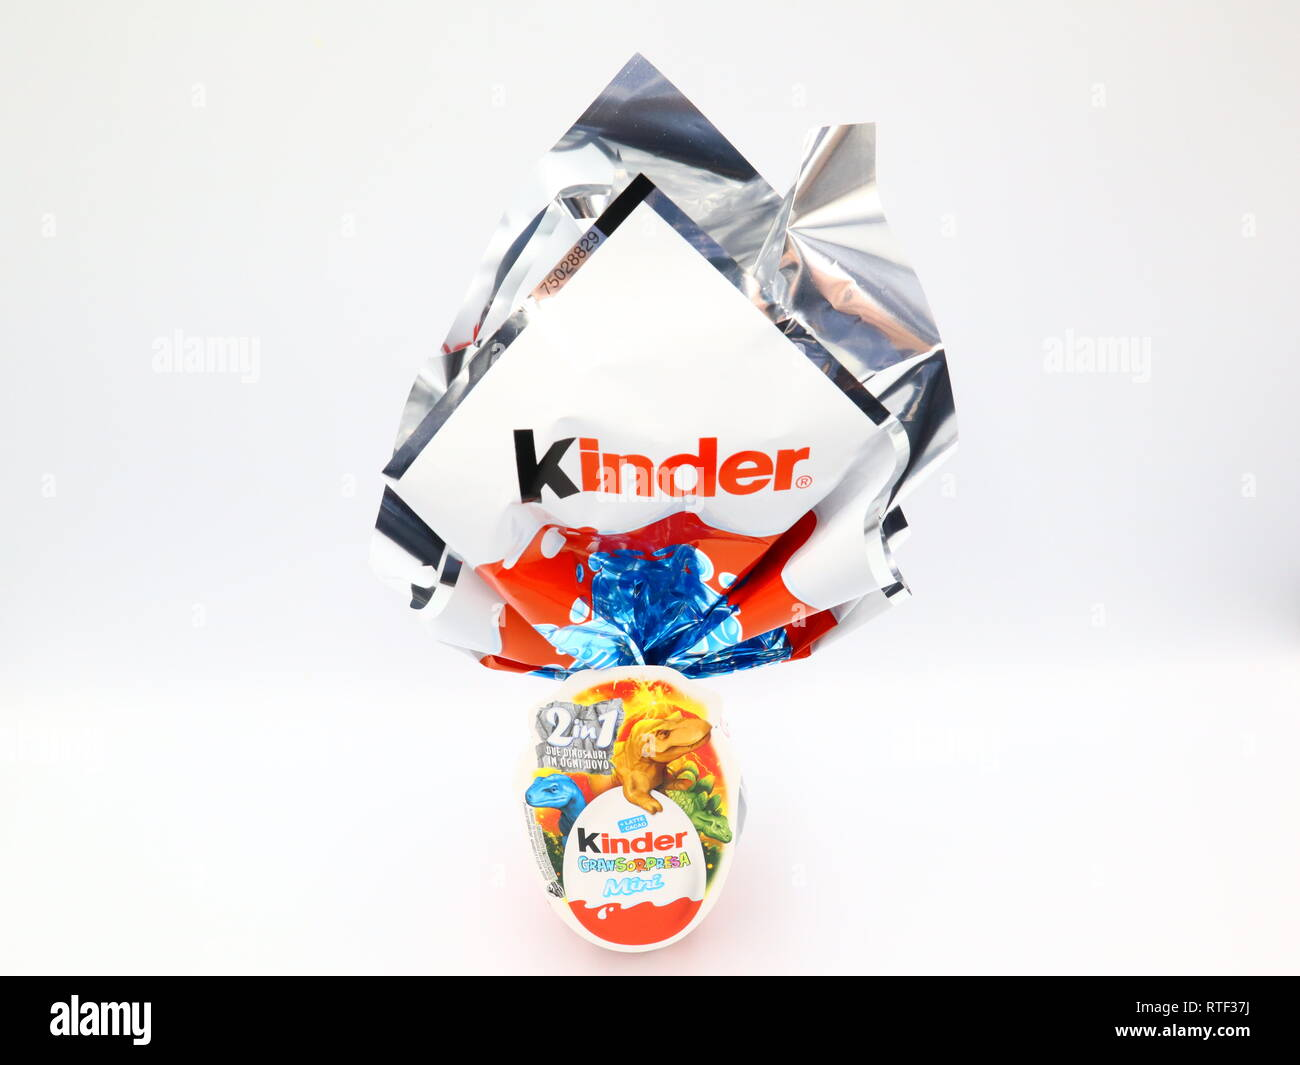 Kinder Origami Kinder Surprise Chocolate Eggs Kinder Surprise Is A Brand